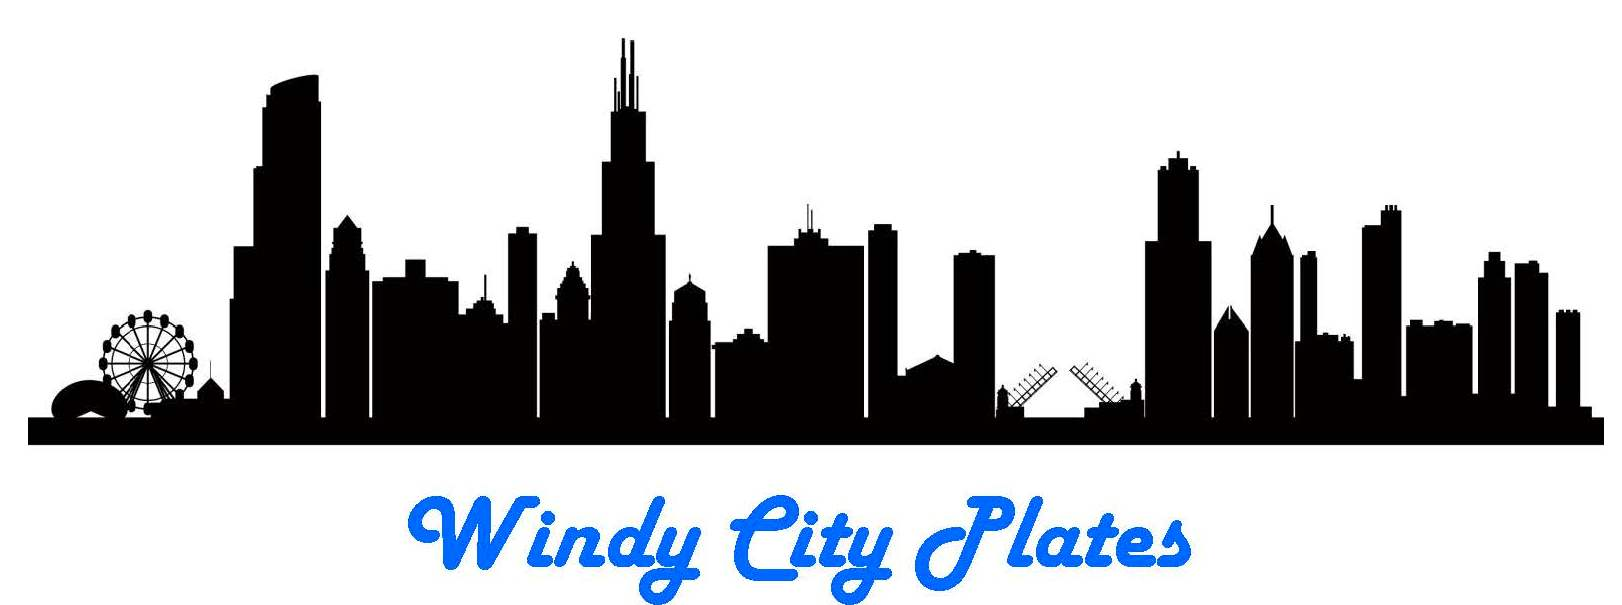 Windy City Plates